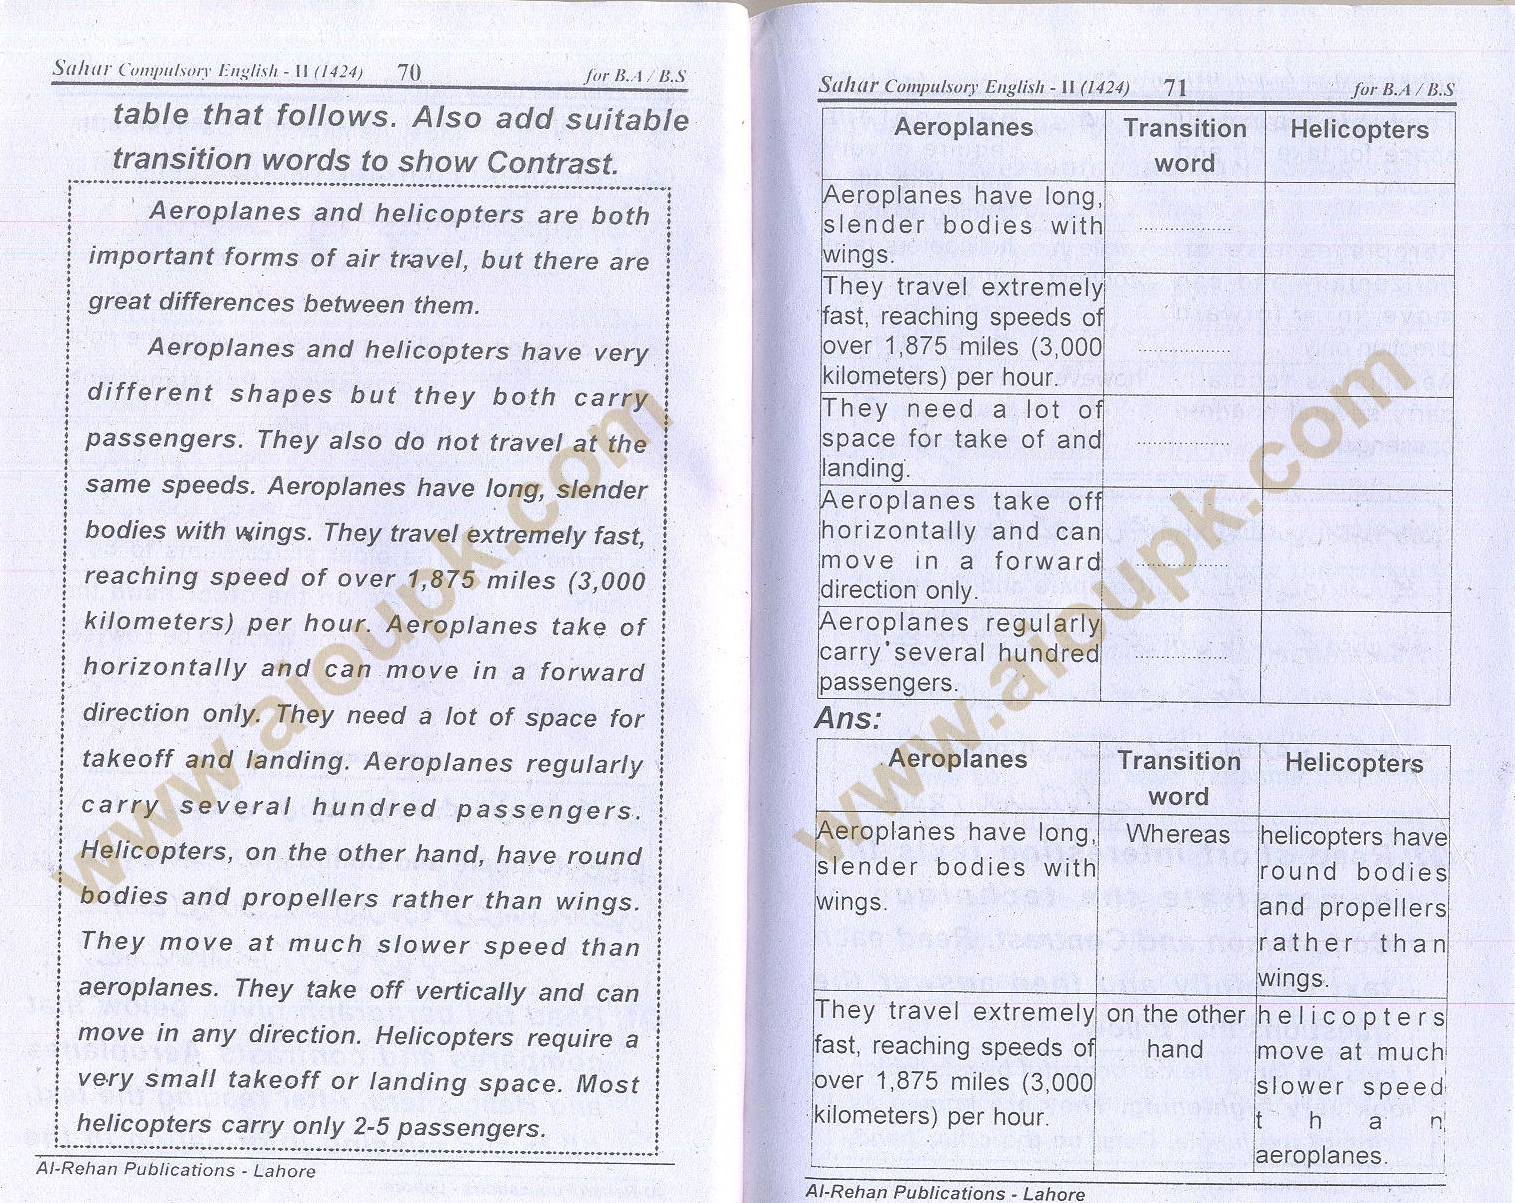 islamiat assignment 1 O'level islamiat notes of sir khurram hussain available on cheaper  islamiat notes by sir khurram hussain karachi, pakistan previous  assignment notes in karachi.